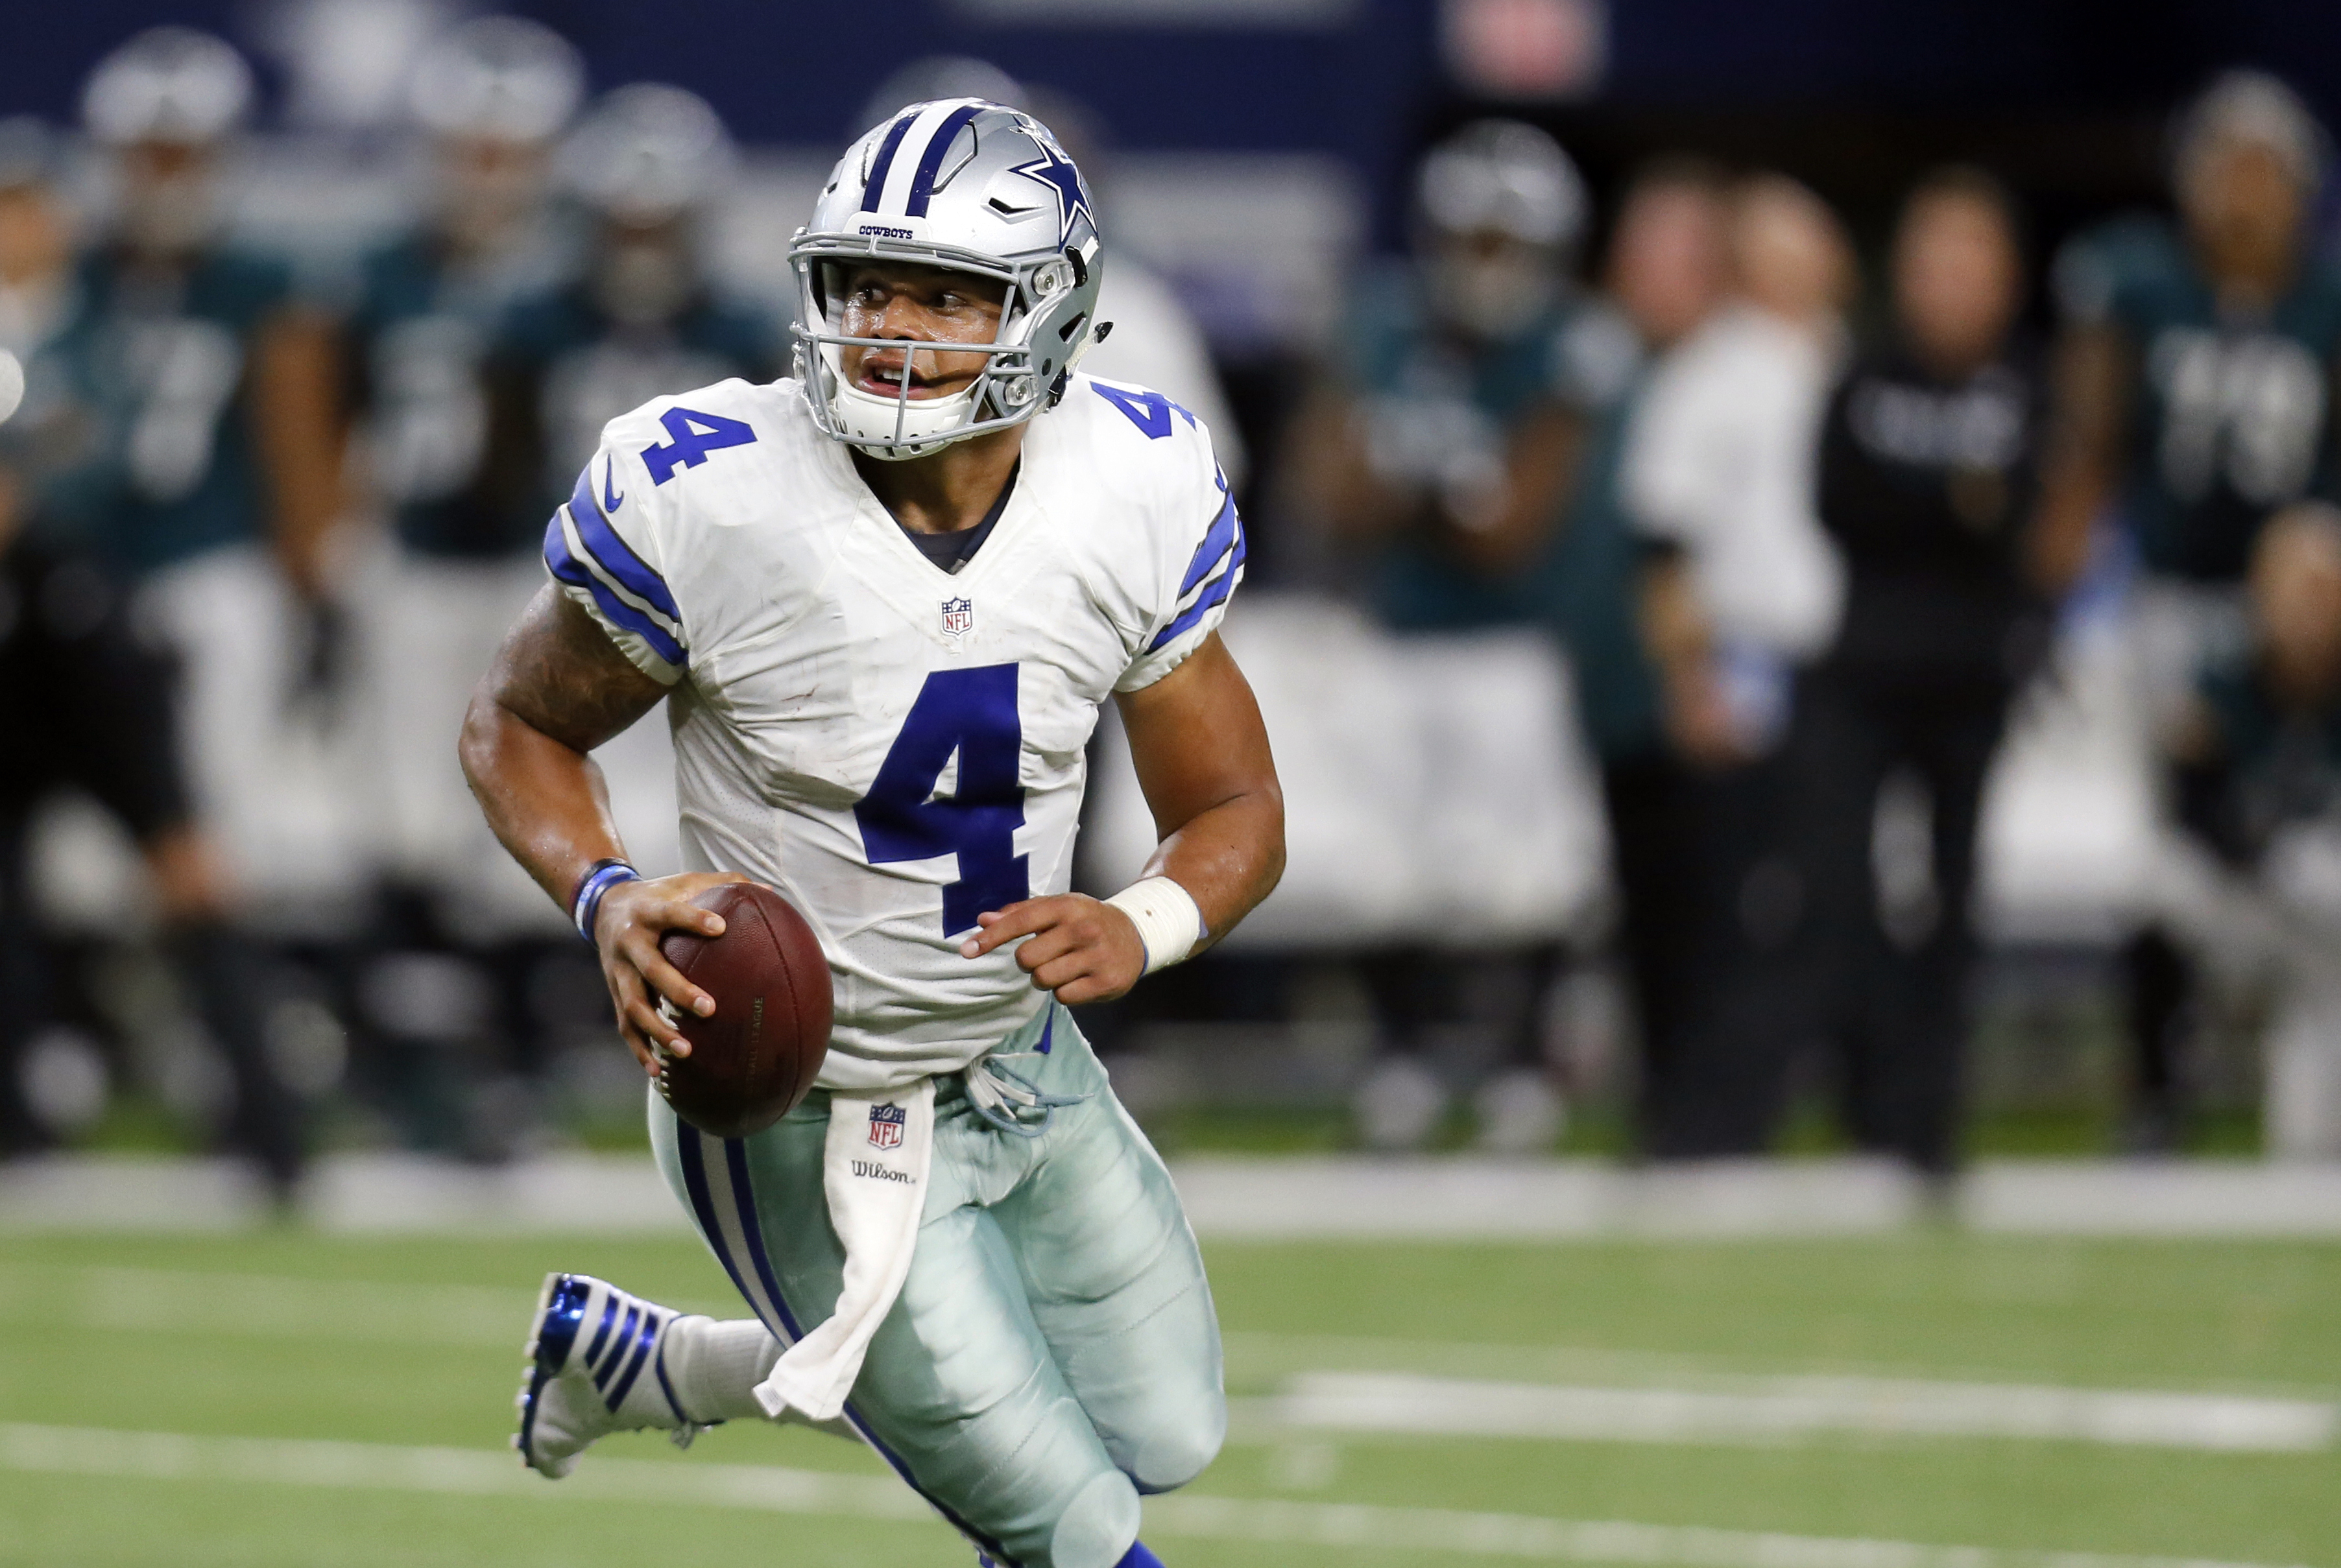 FILE - In this Sunday, Oct. 30, 2016, file photo, Dallas Cowboys quarterback Dak Prescott scrambles out of the pocket during an NFL football game against the Philadelphia Eagles in Arlington, Texas. As Dallas rookie quarterback's winning streak grows, Jer